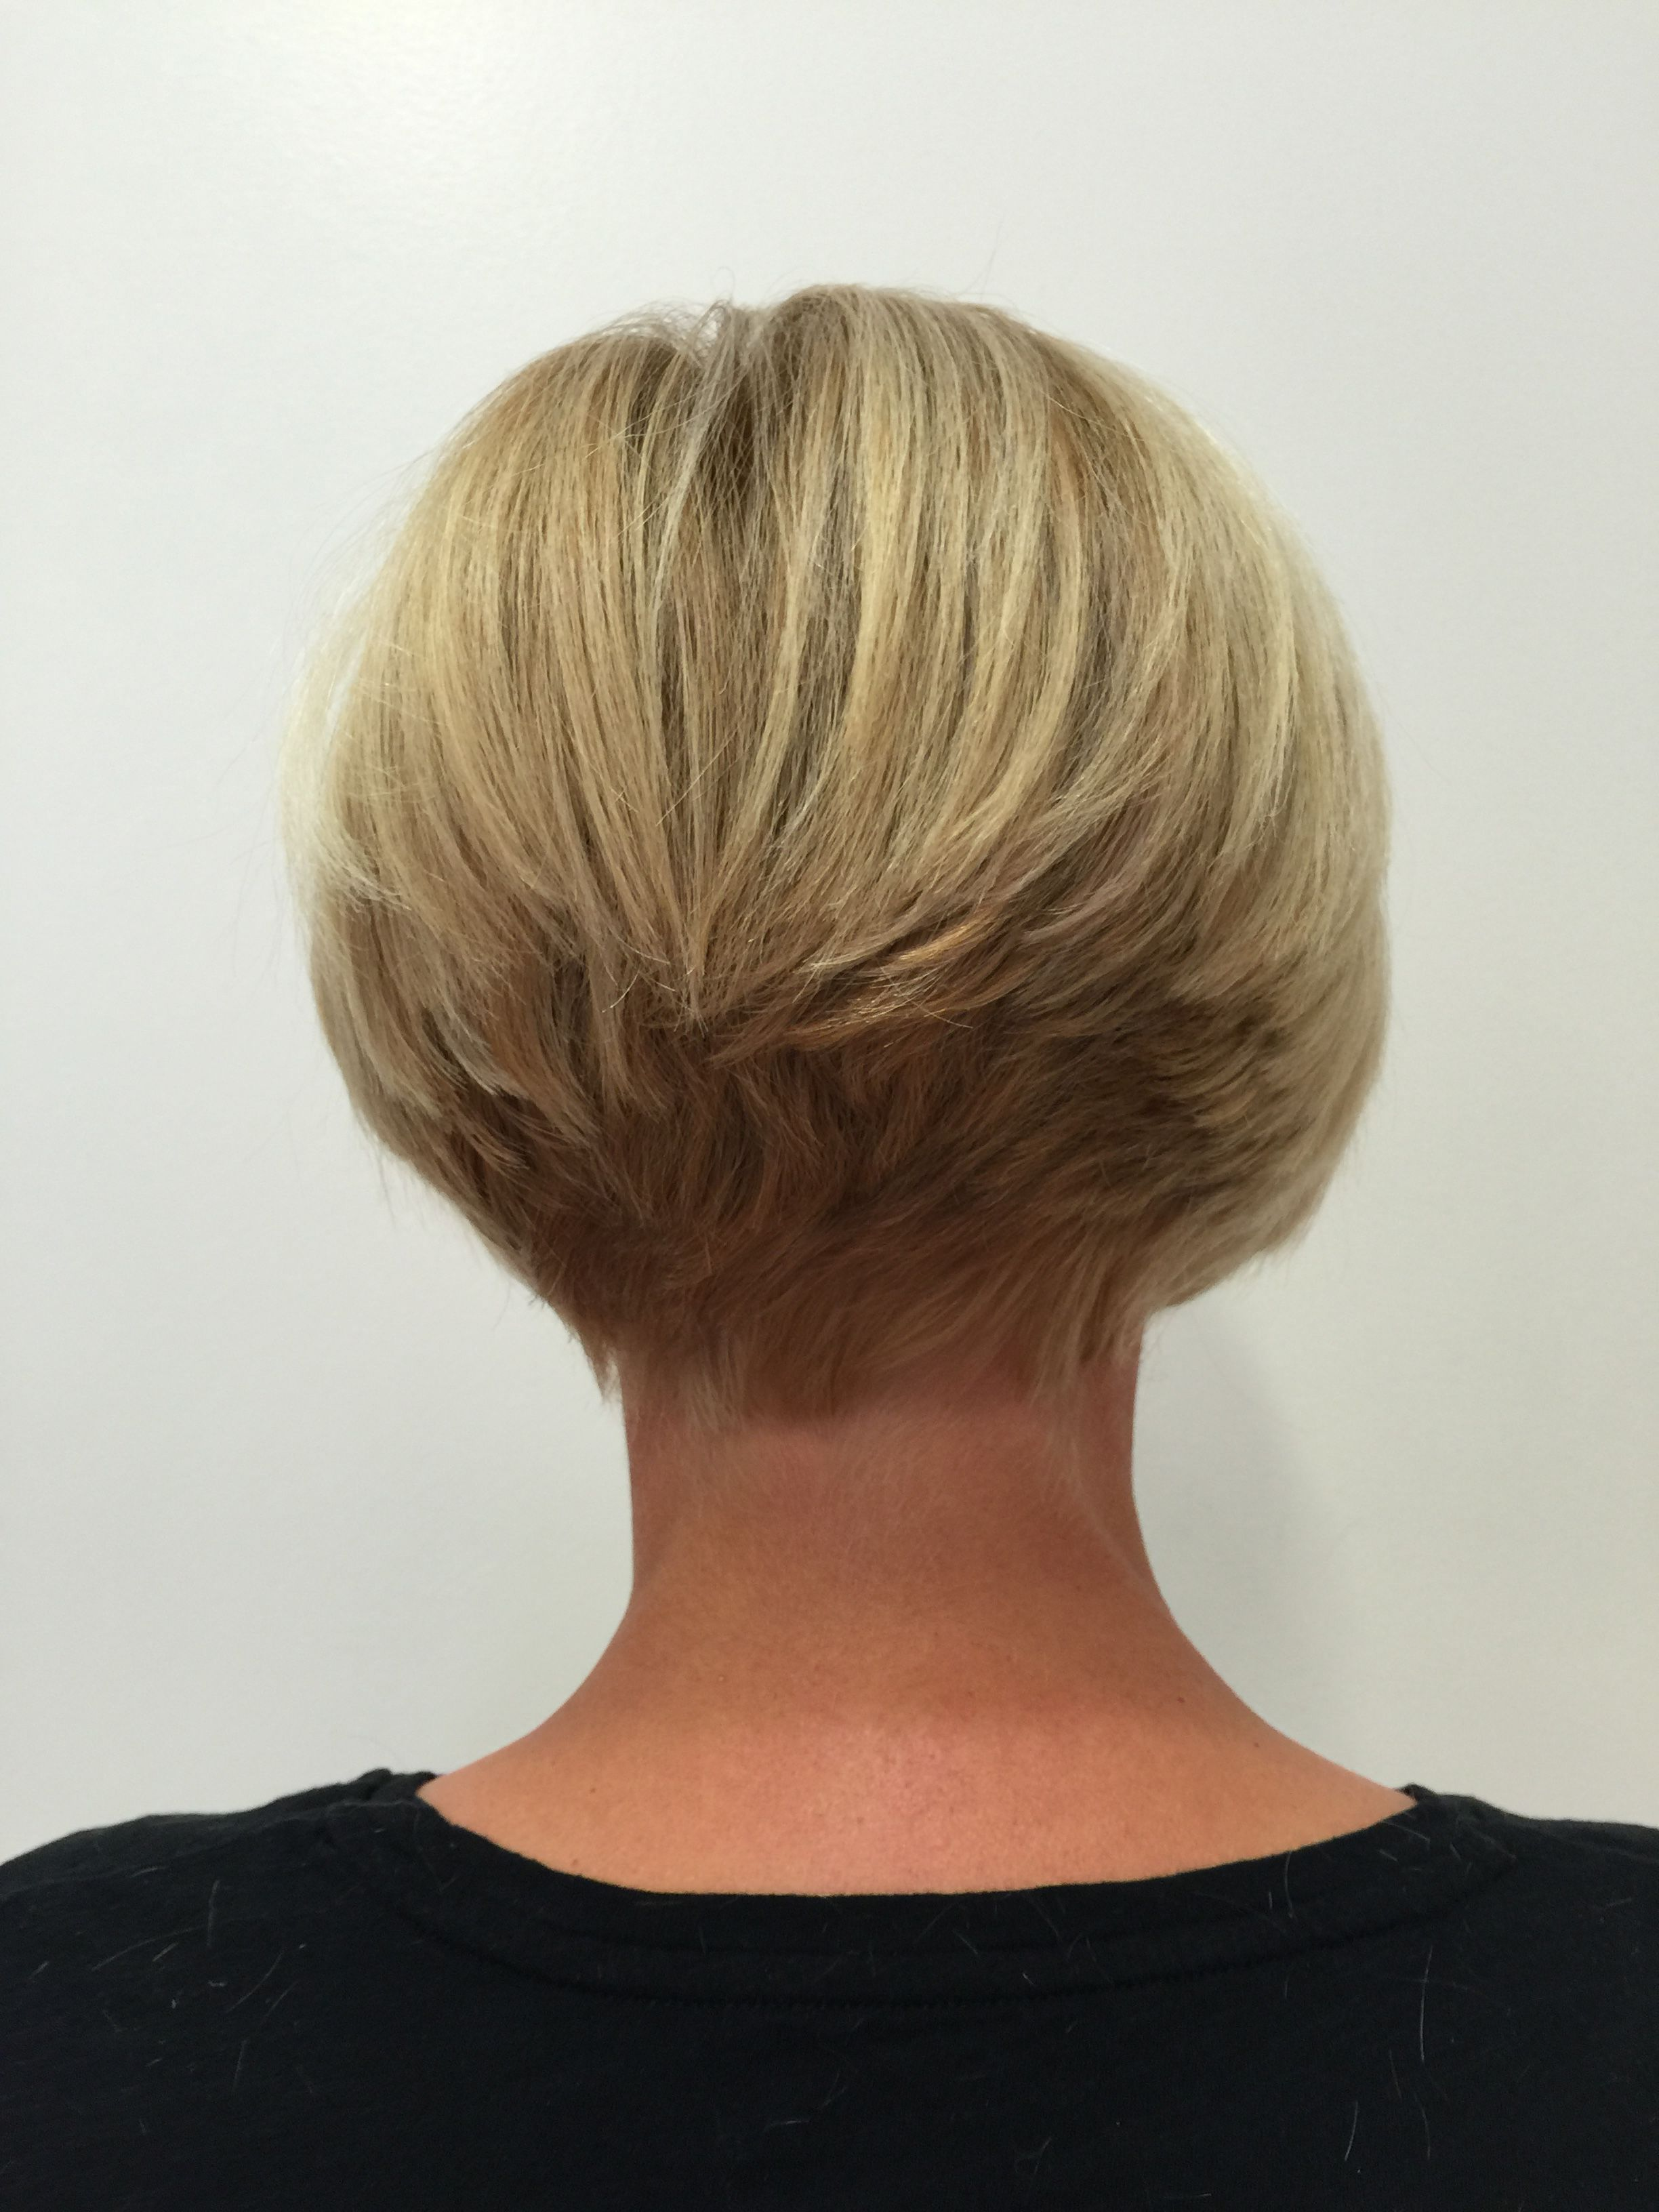 Short Hairstyle For Mature Women Over 60